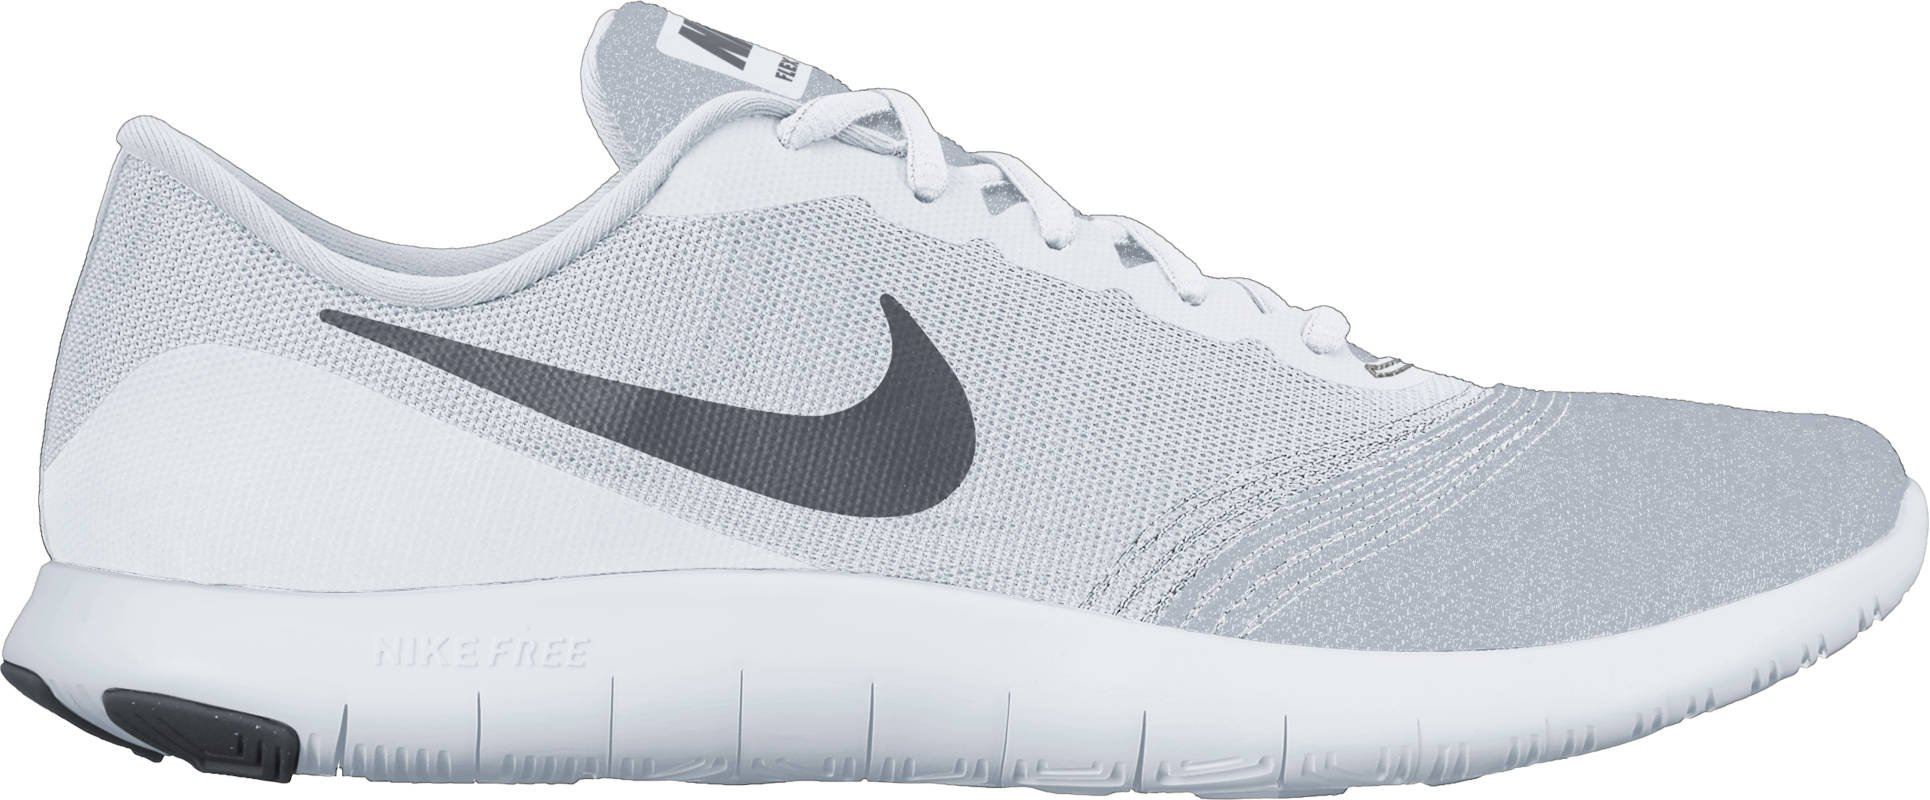 NIKE Flex Contact Womens Style : 908995 Womens 908995-100 Size 11